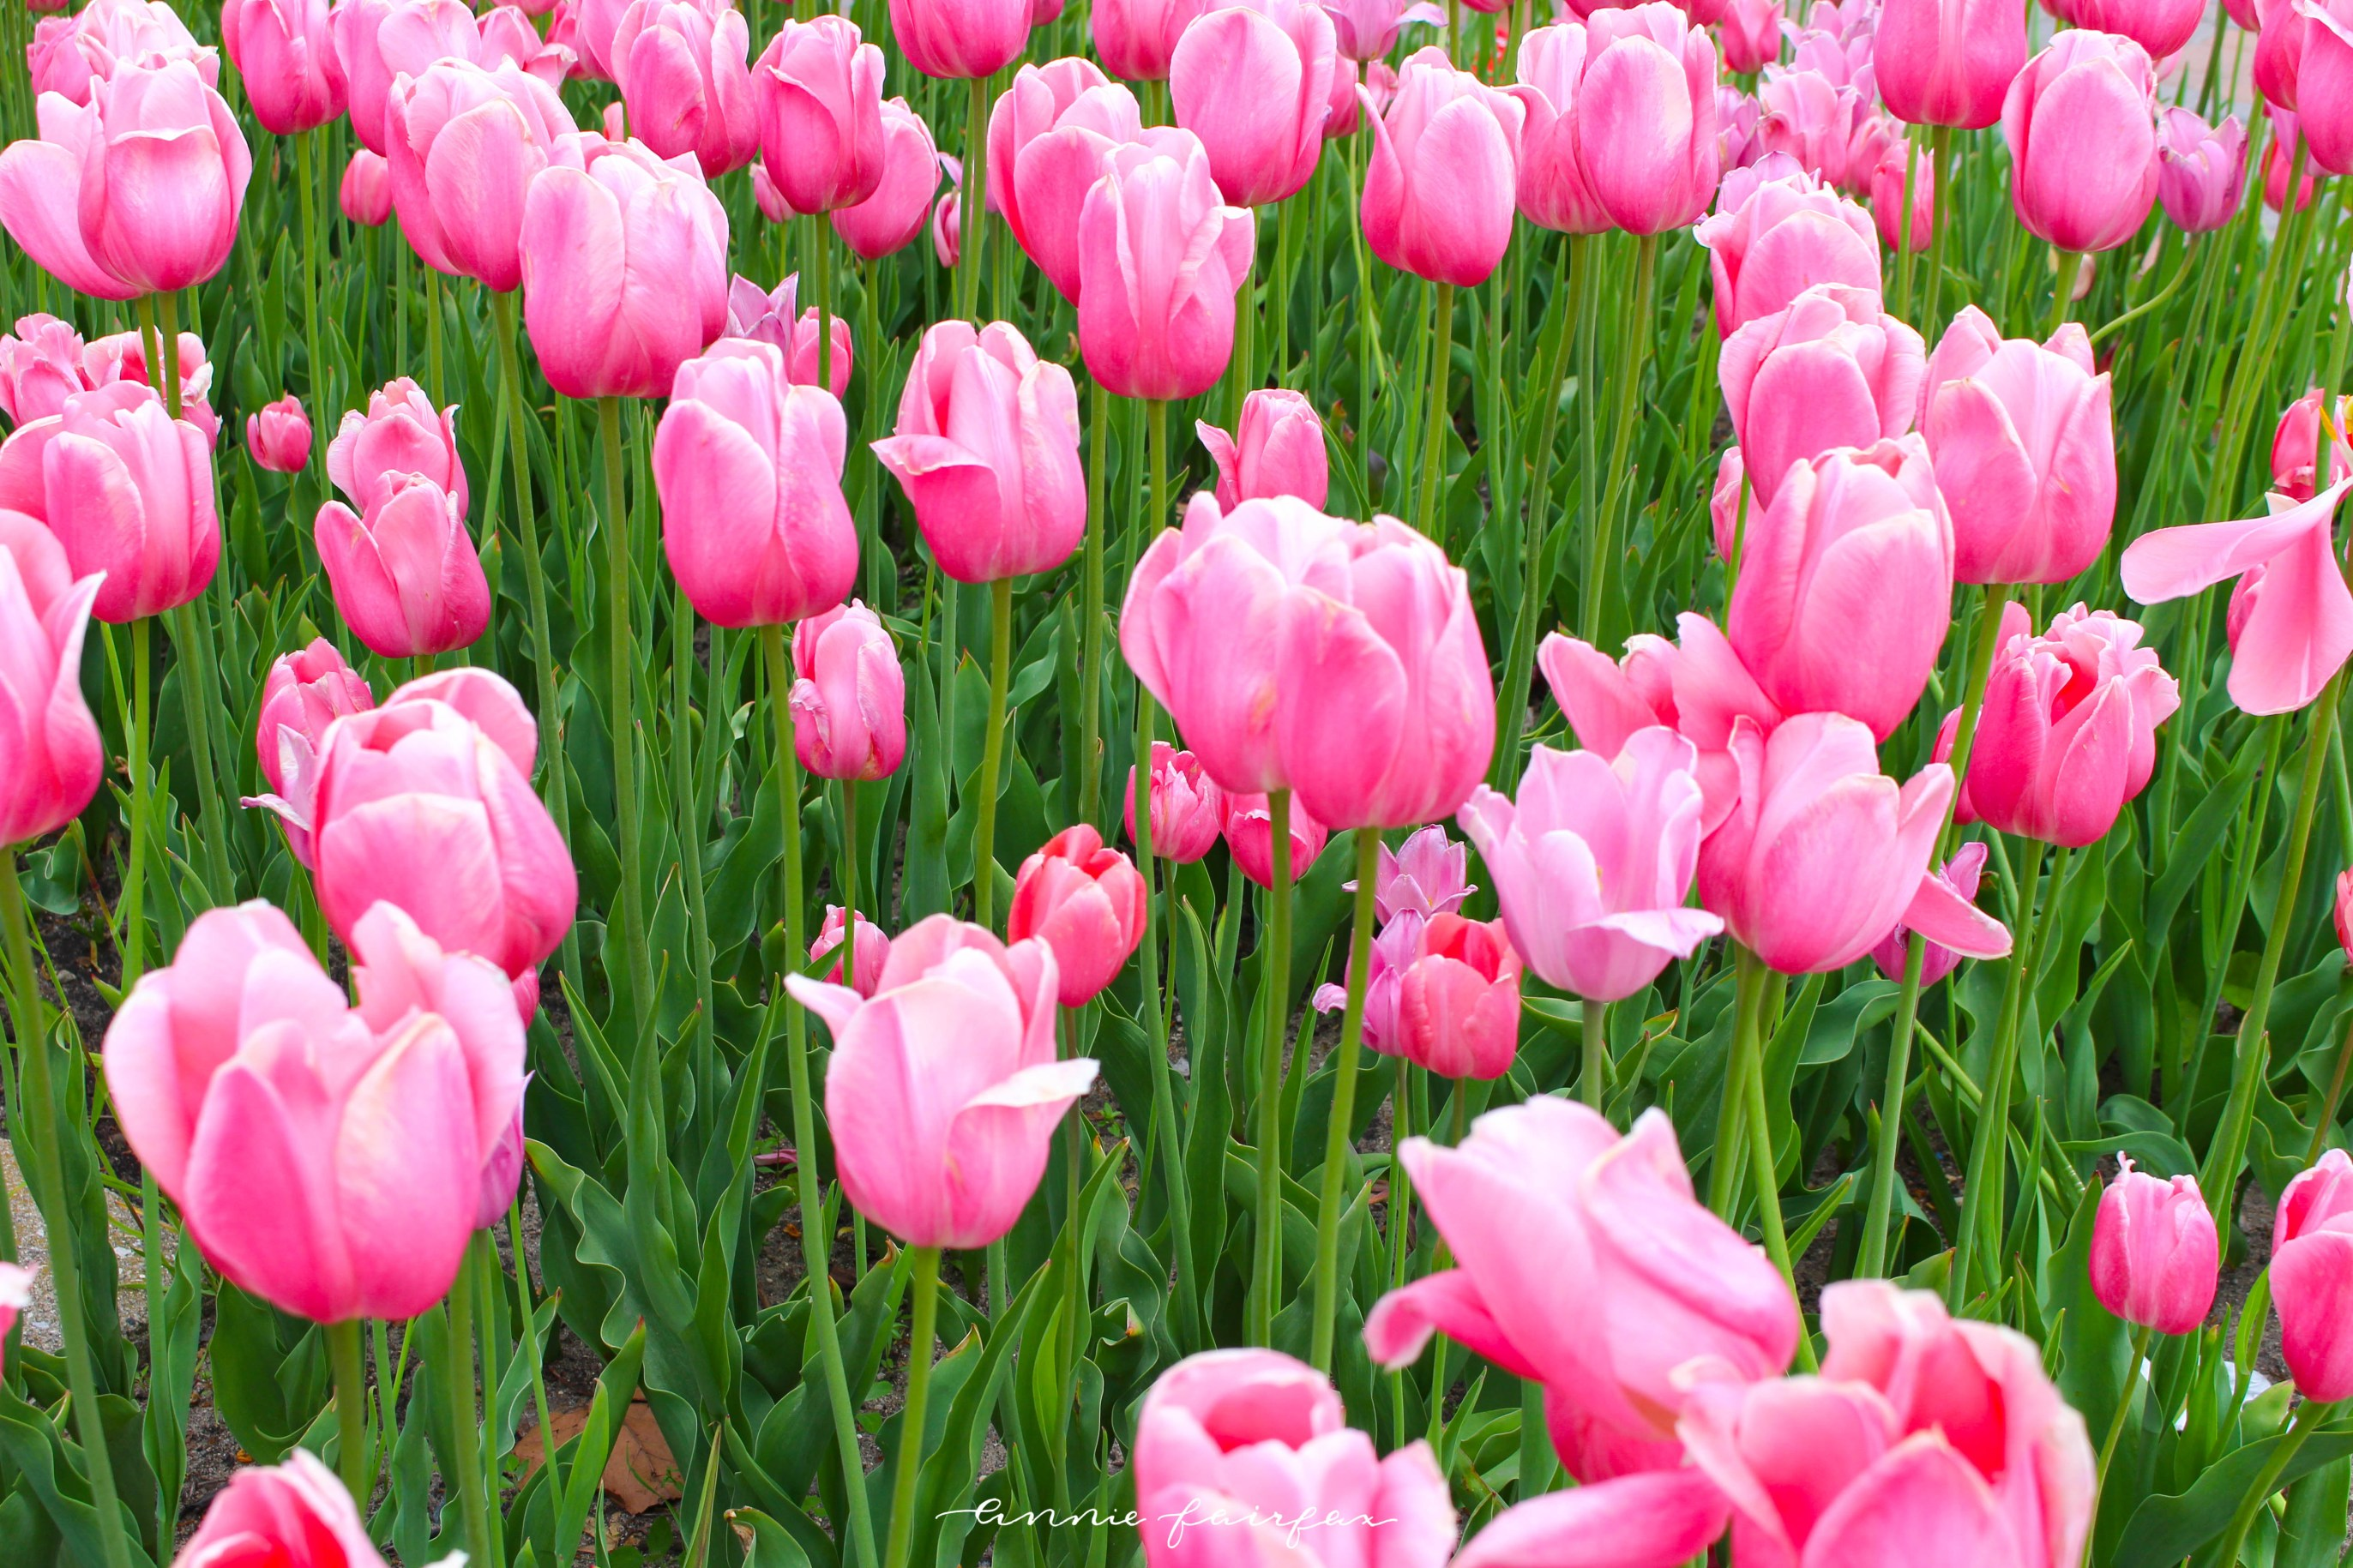 Pink Tulips at Tulip Time Festival in Holland, MI